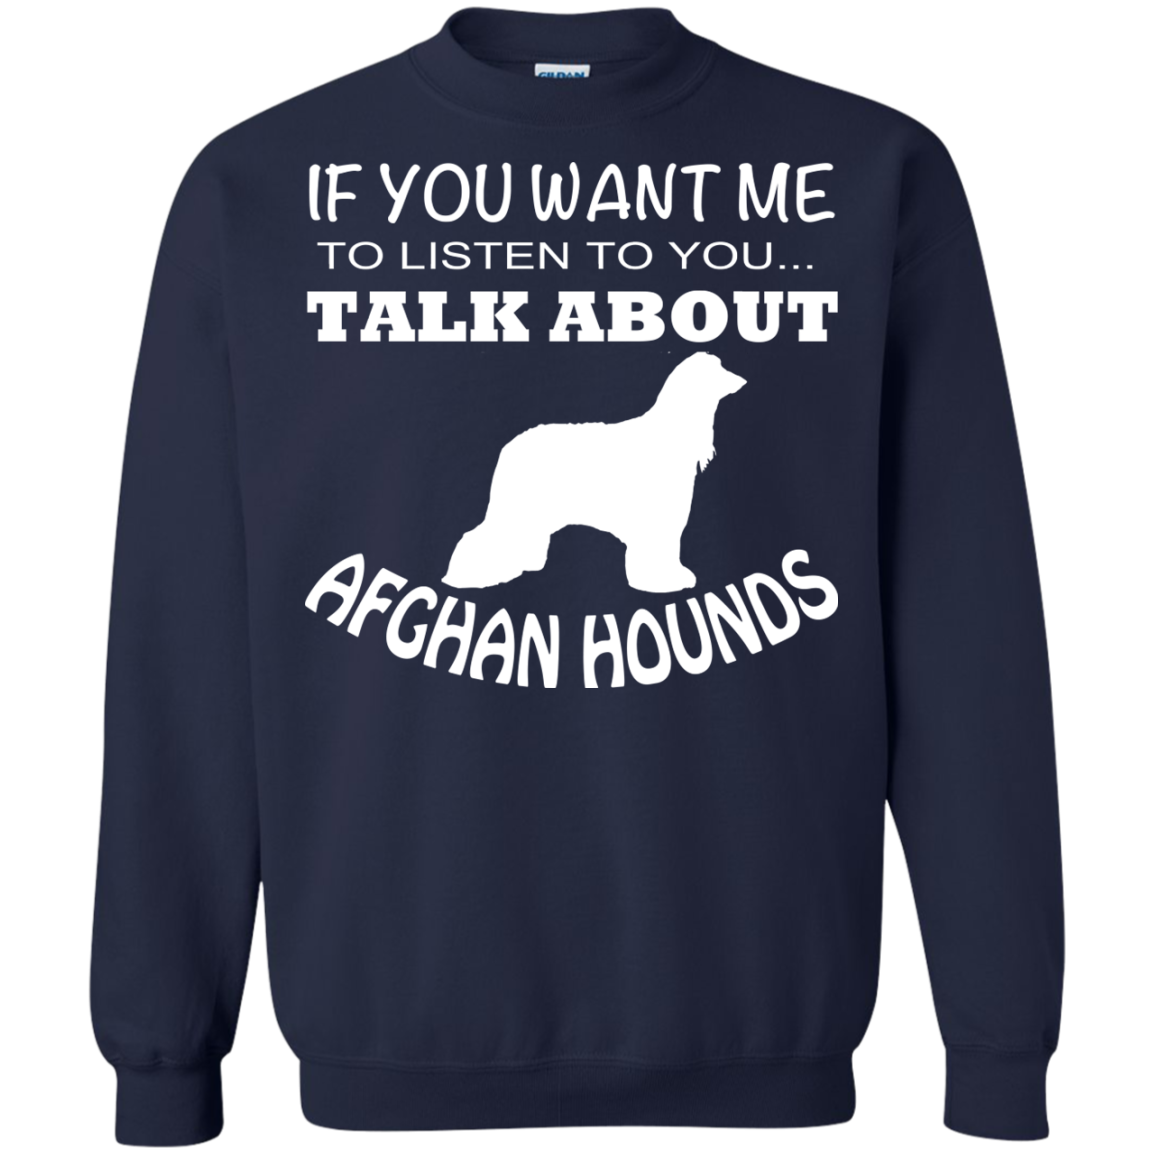 If You Want Me To Listen To You Talk About Afghan Hounds Sweatshirts